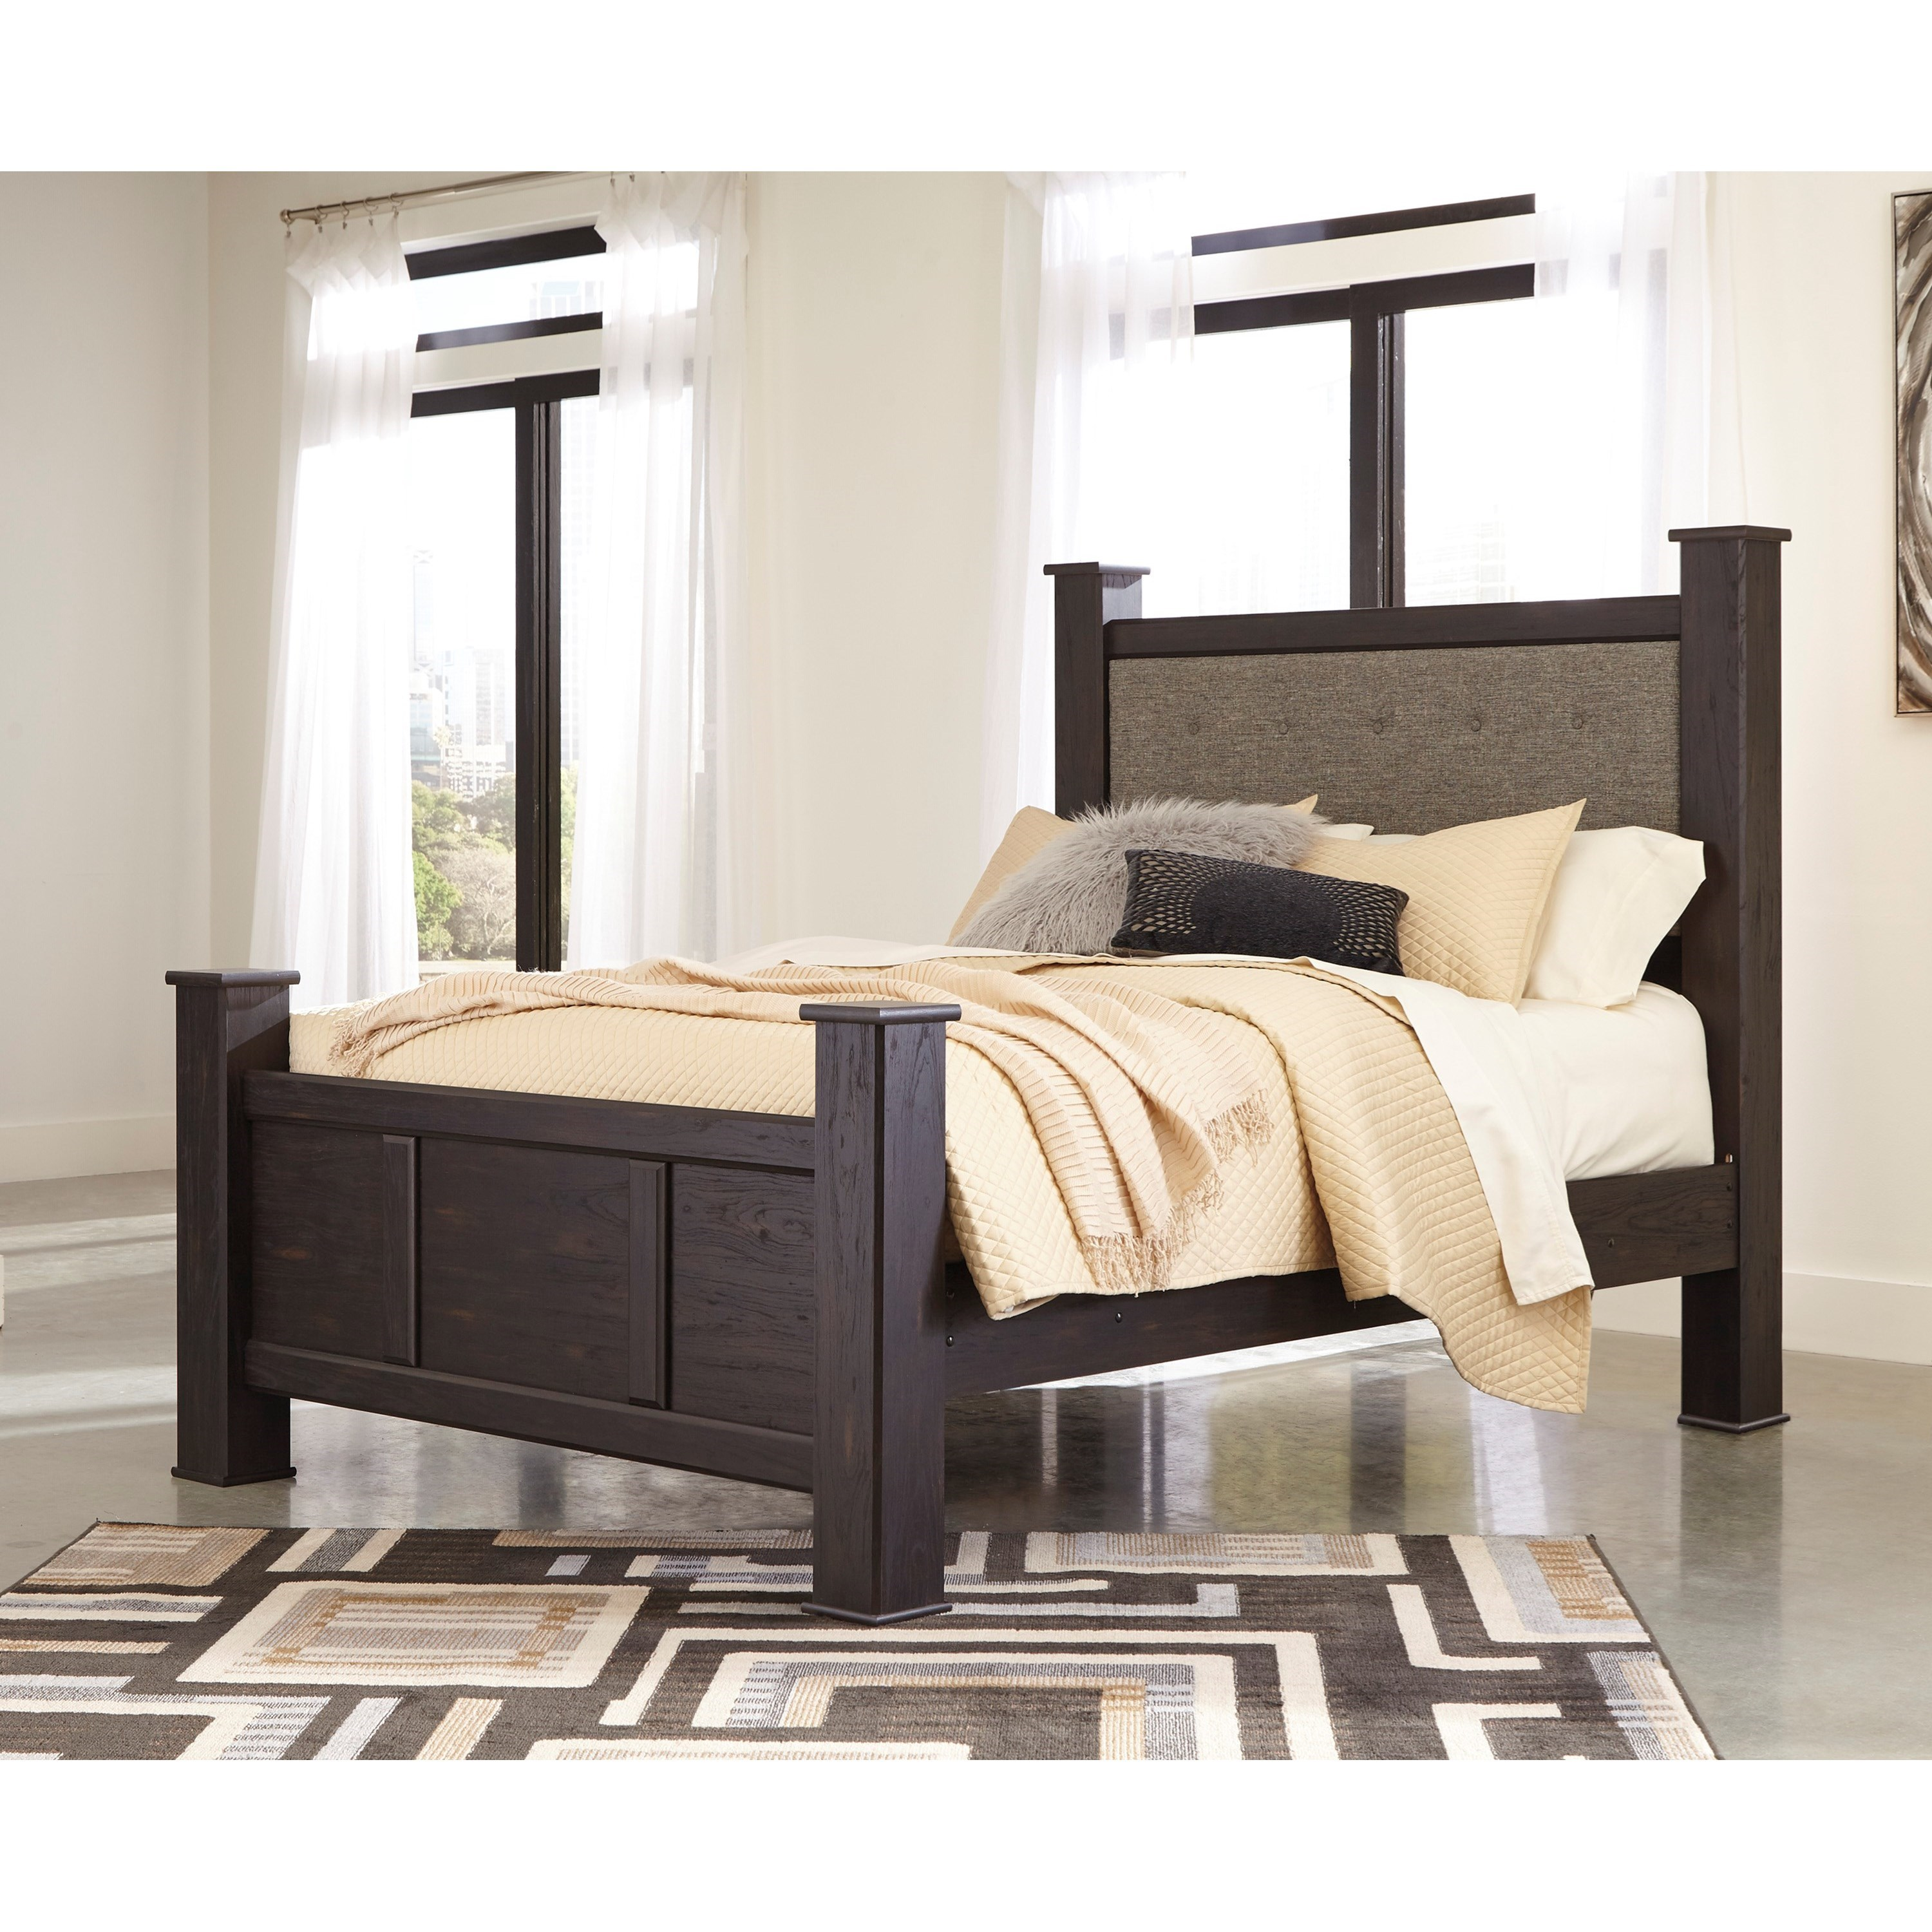 A1 Furniture Mattress Princess Night: Signature Design By Ashley Reylow Contemporary Queen